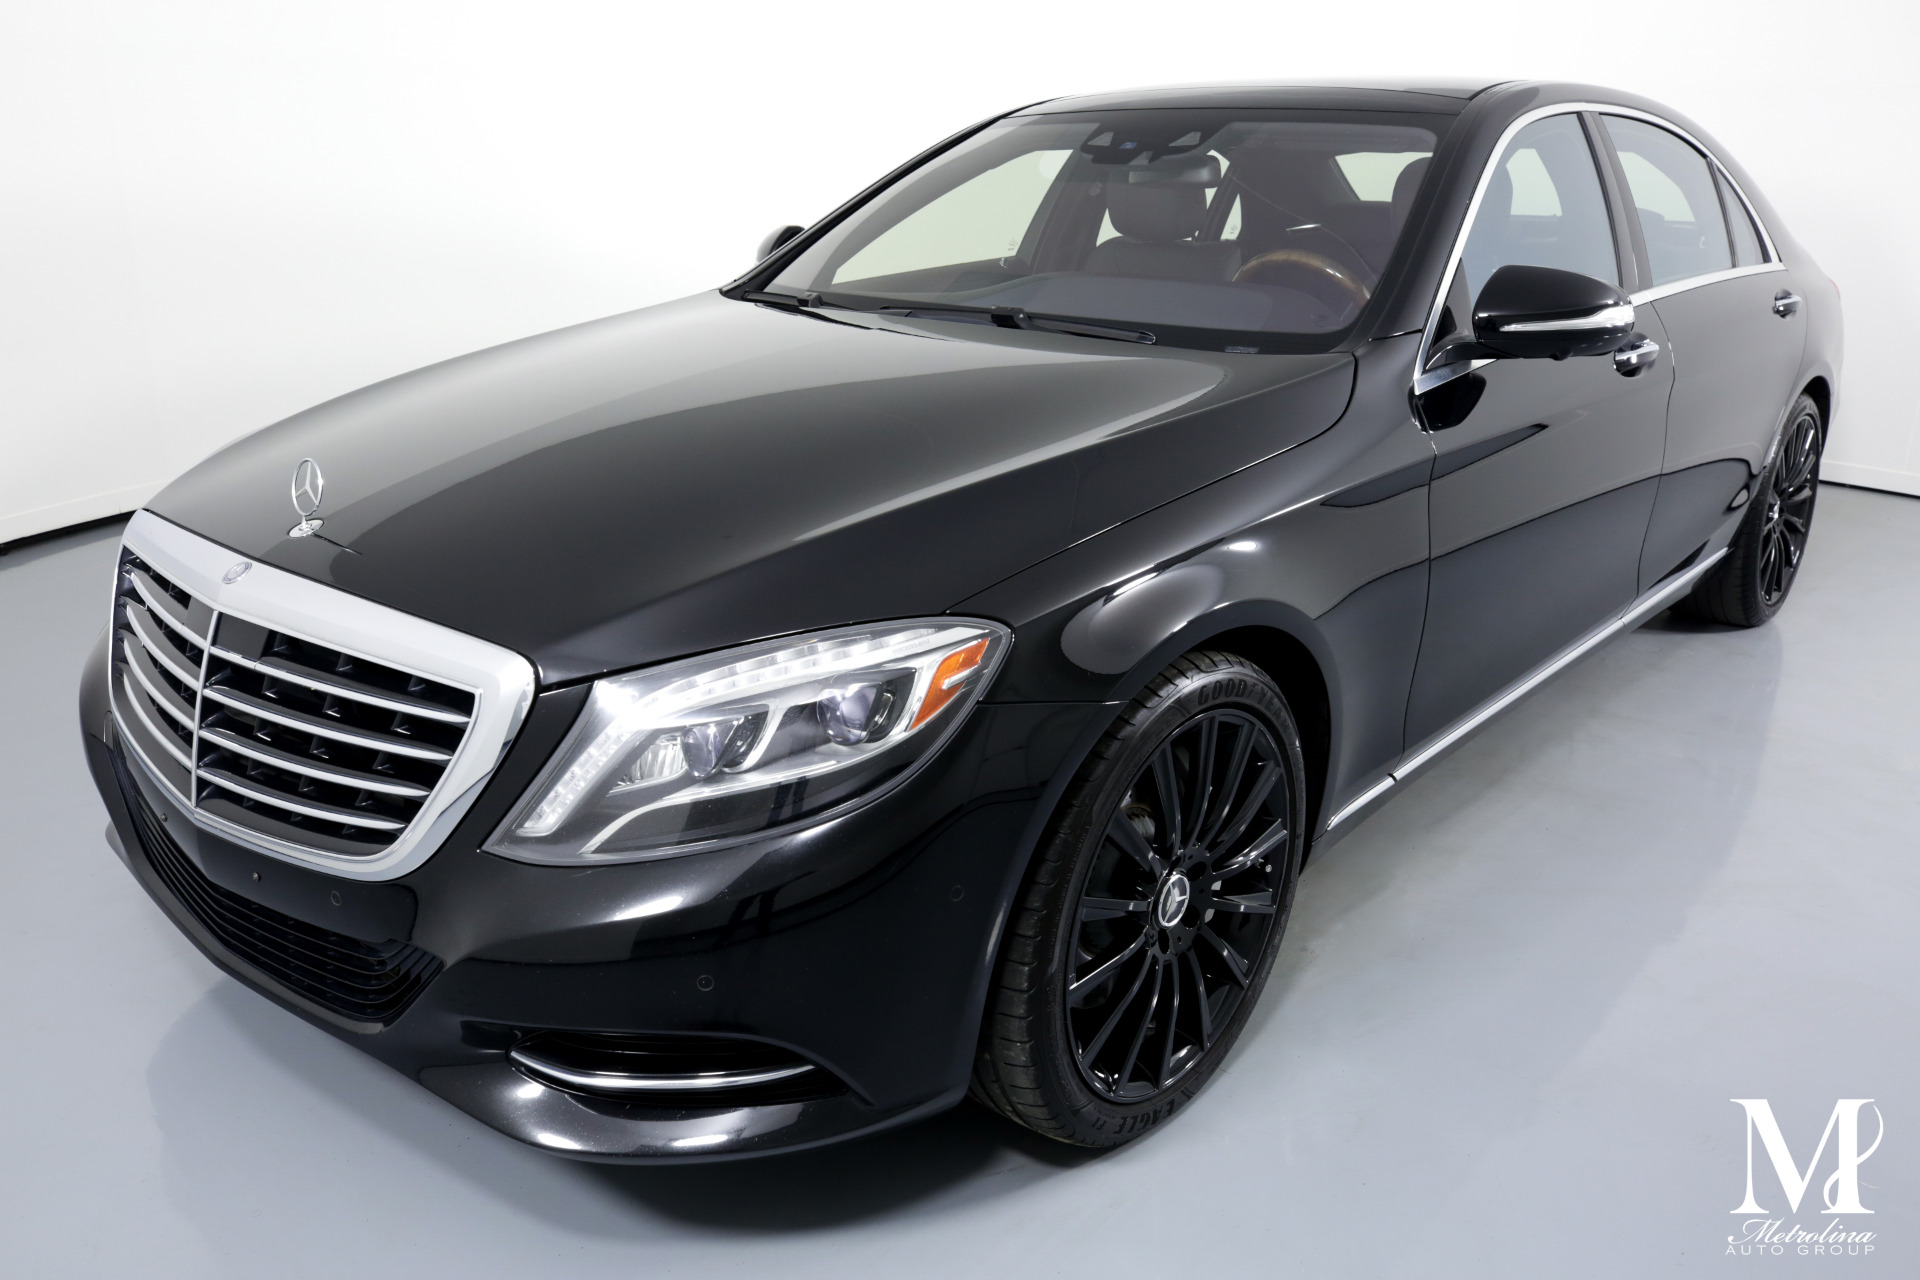 Used 2014 Mercedes-Benz S-Class S 550 for sale $38,456 at Metrolina Auto Group in Charlotte NC 28217 - 4